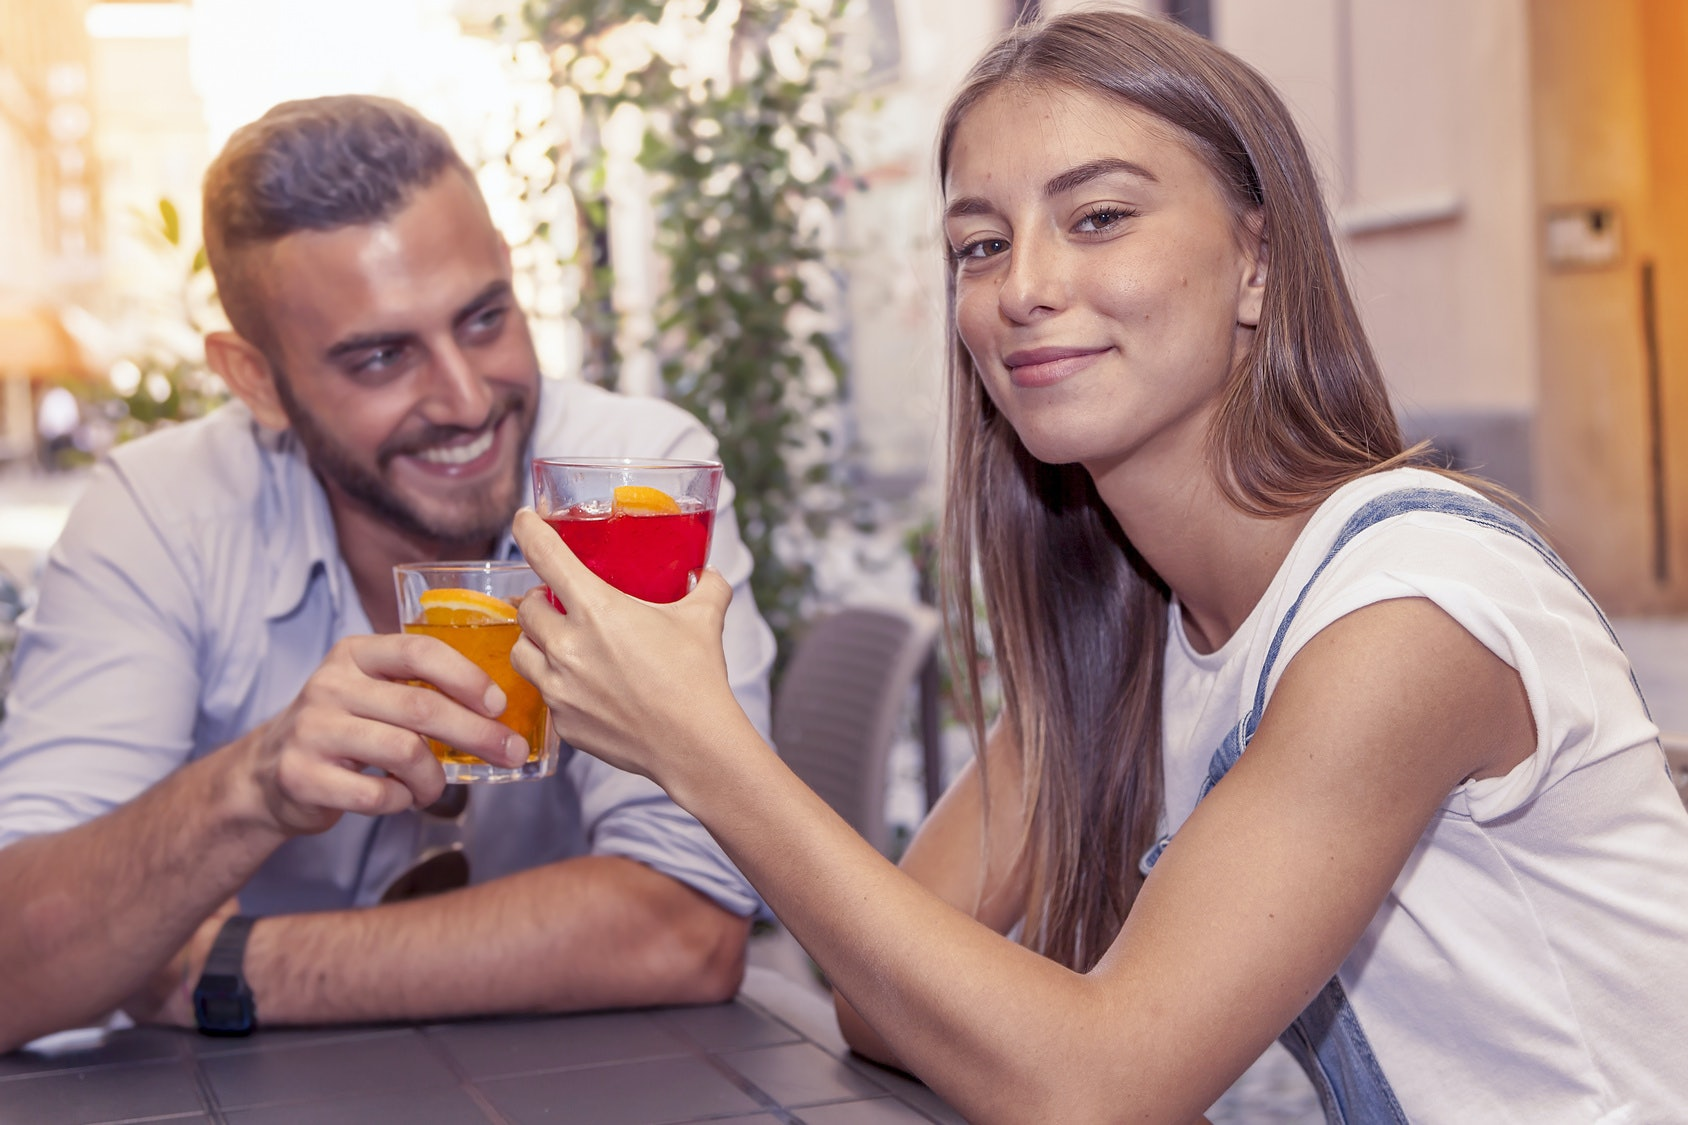 Women have it easy in dating what is second